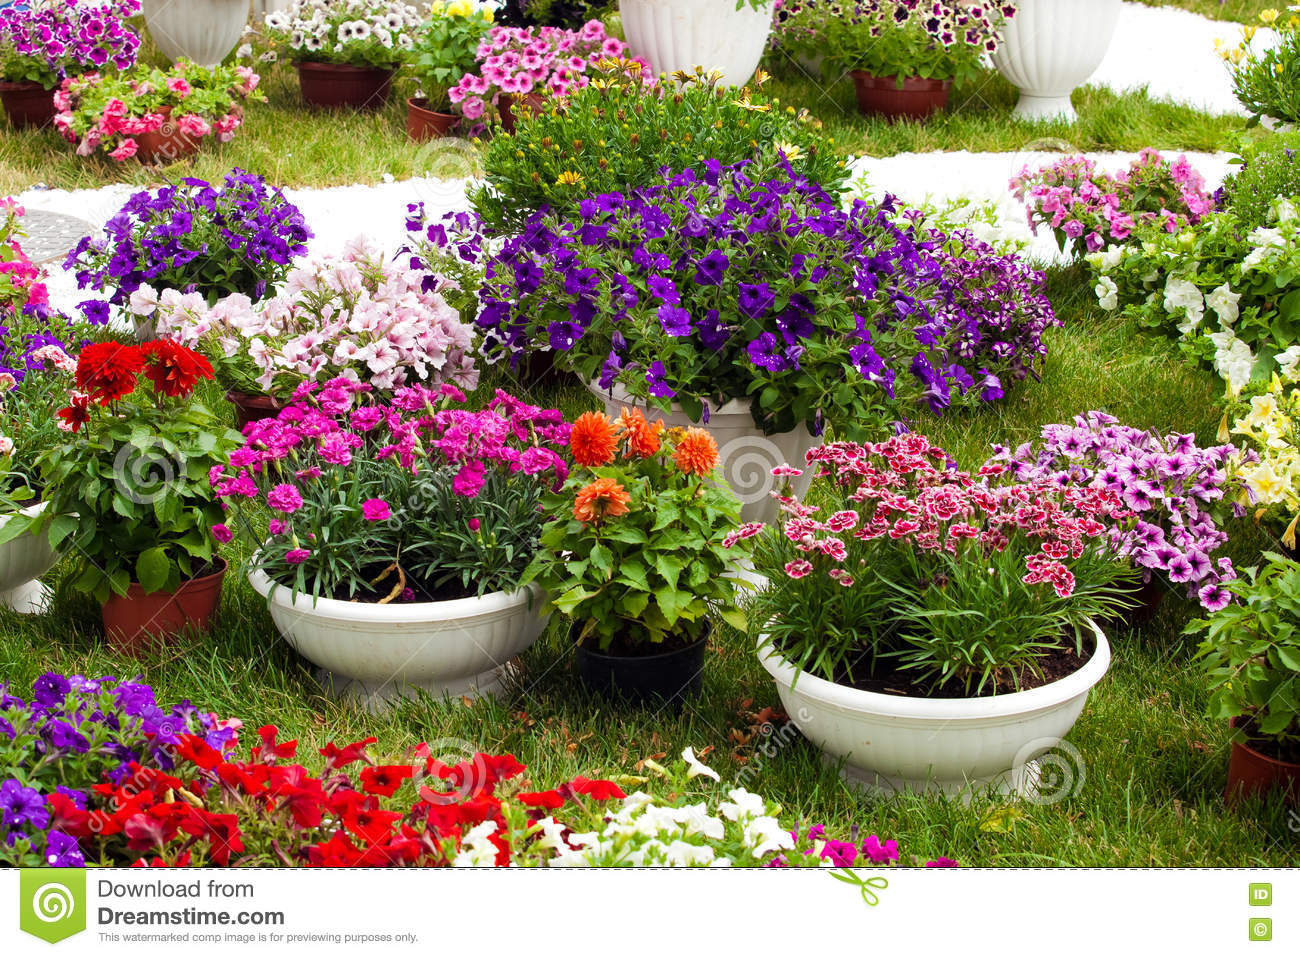 Garden Flowers Of Different Colors In Pots Stock Image Image Of